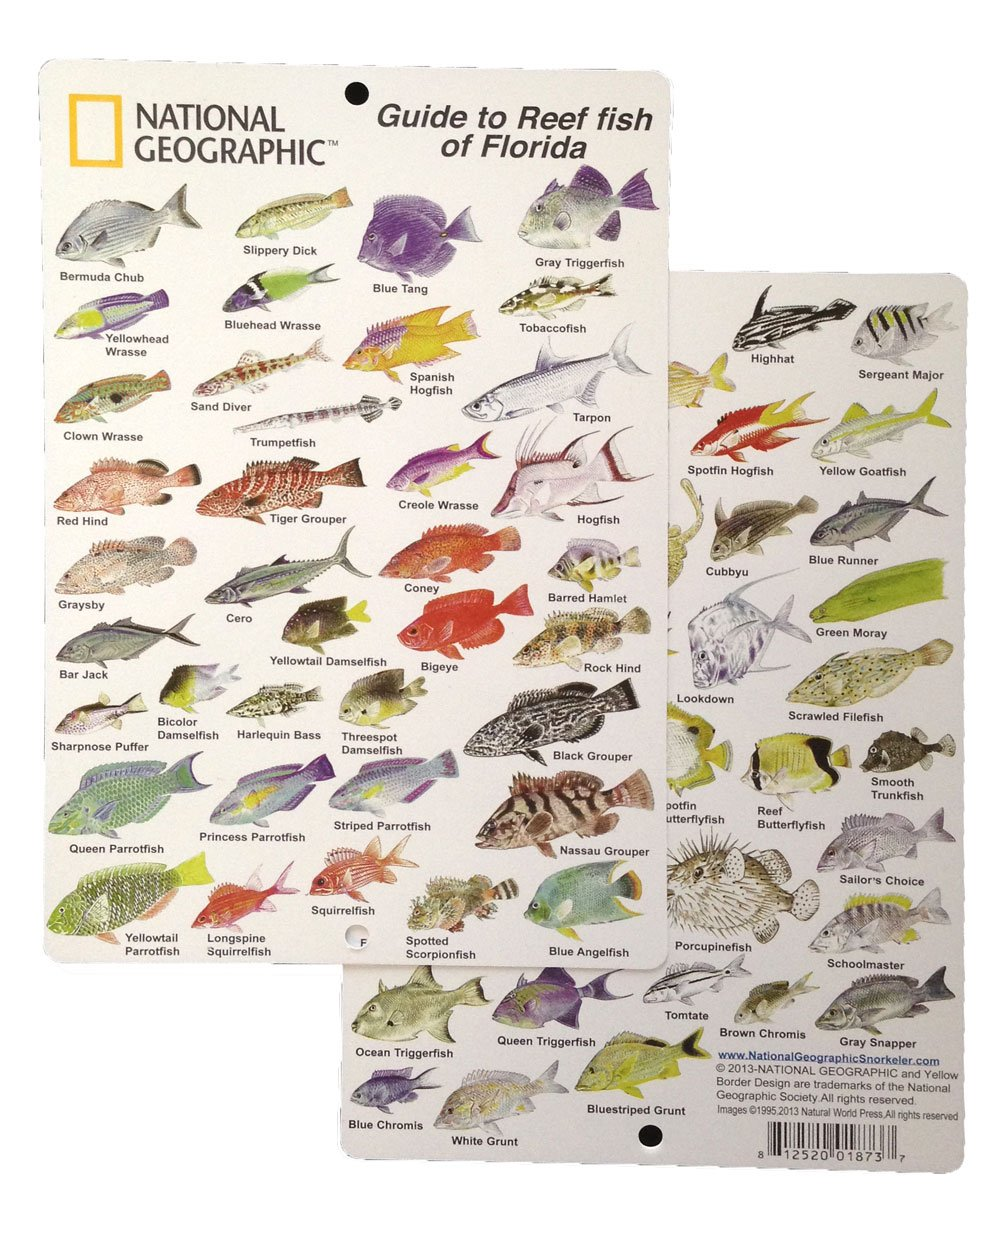 Hawaii Reef Fish Guide Images